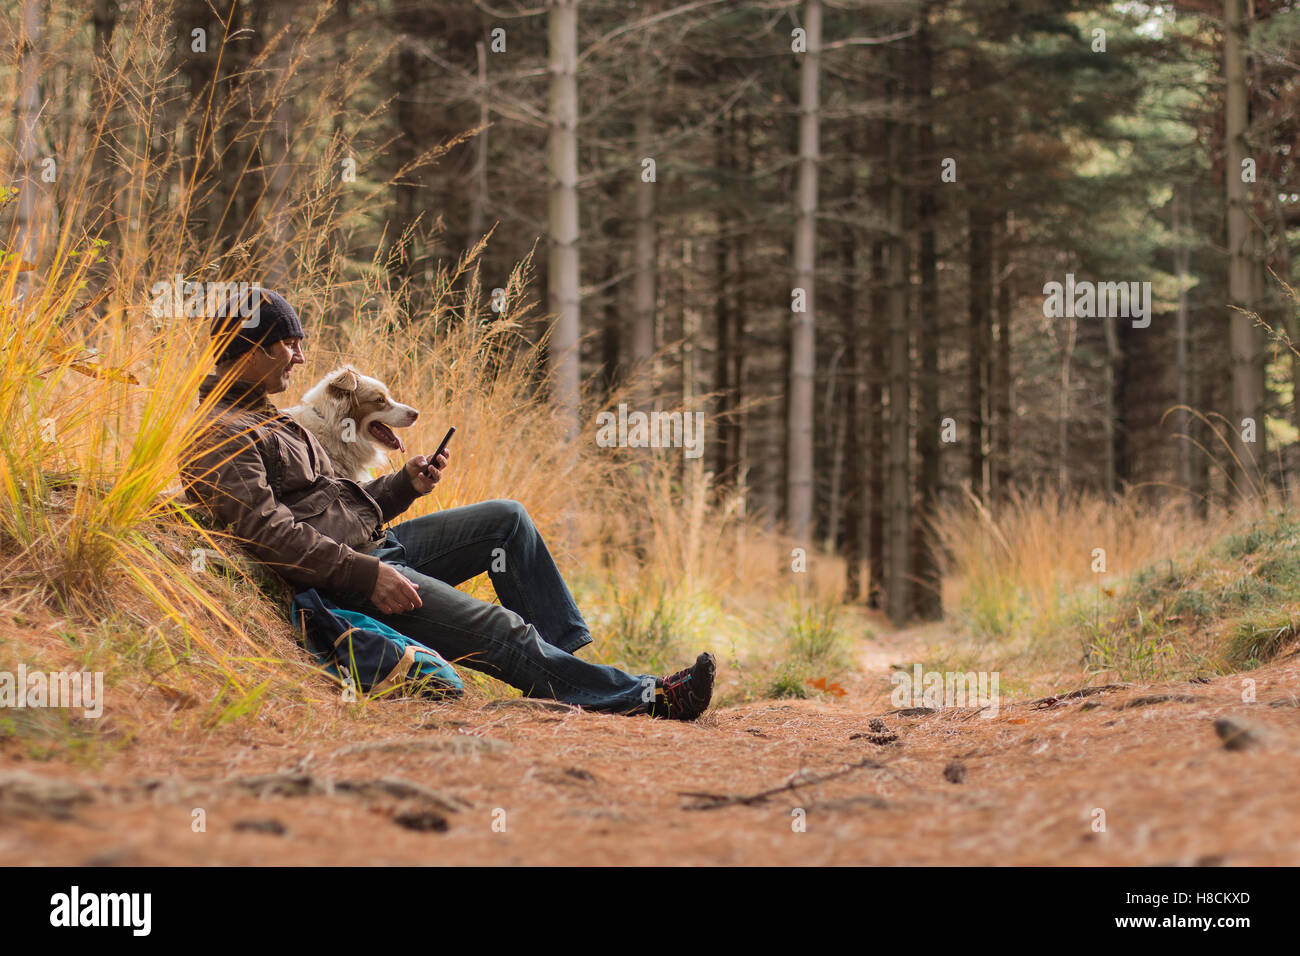 A man and a dog hiking in the woods looking at the phone dogs sitting on a woodland trail in autumn - Stock Image